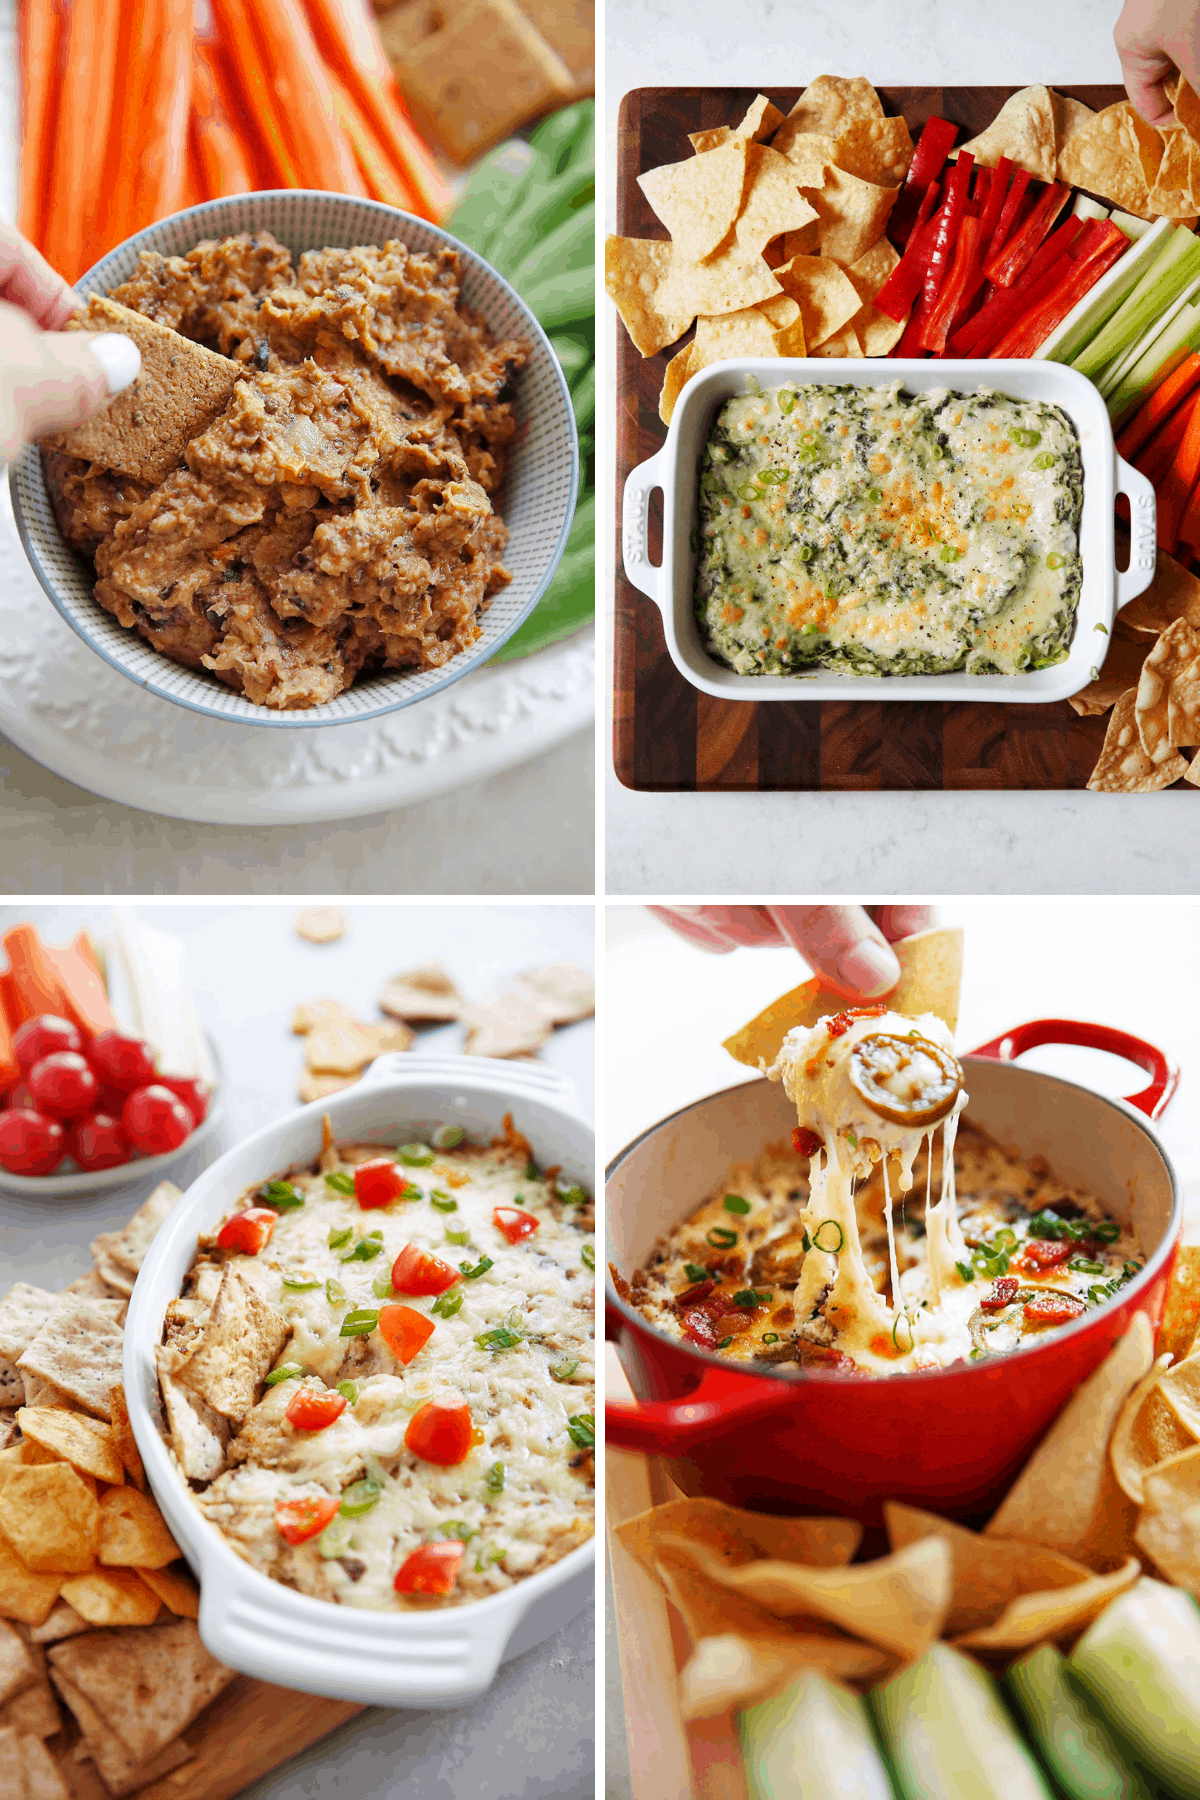 Healthy snack recipes to dip.